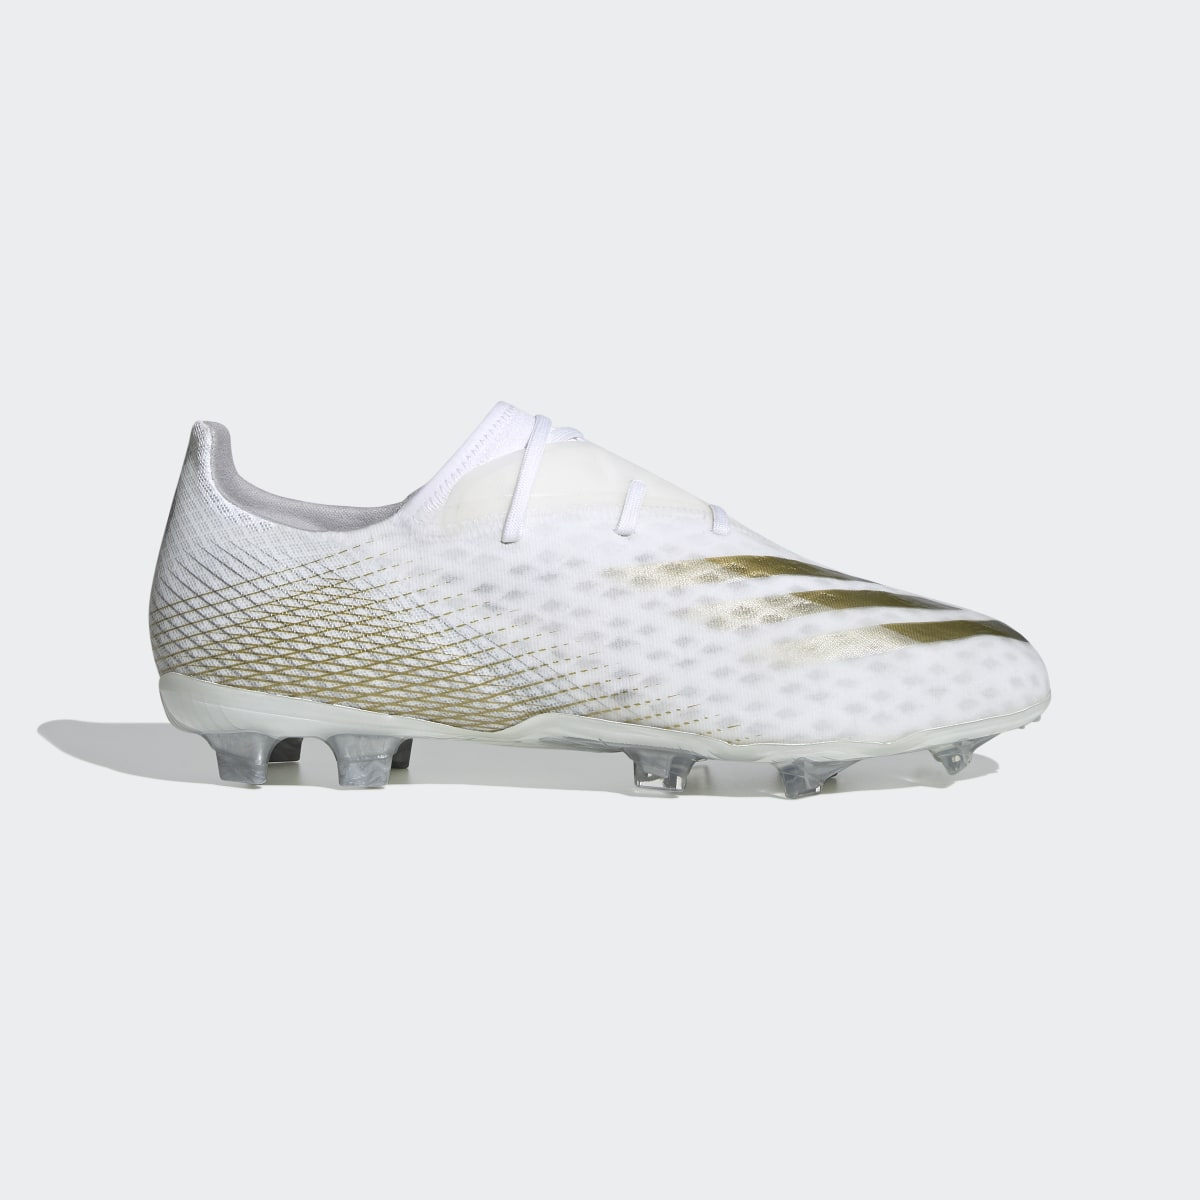 X Ghosted.2 Firm Ground Soccer Cleats